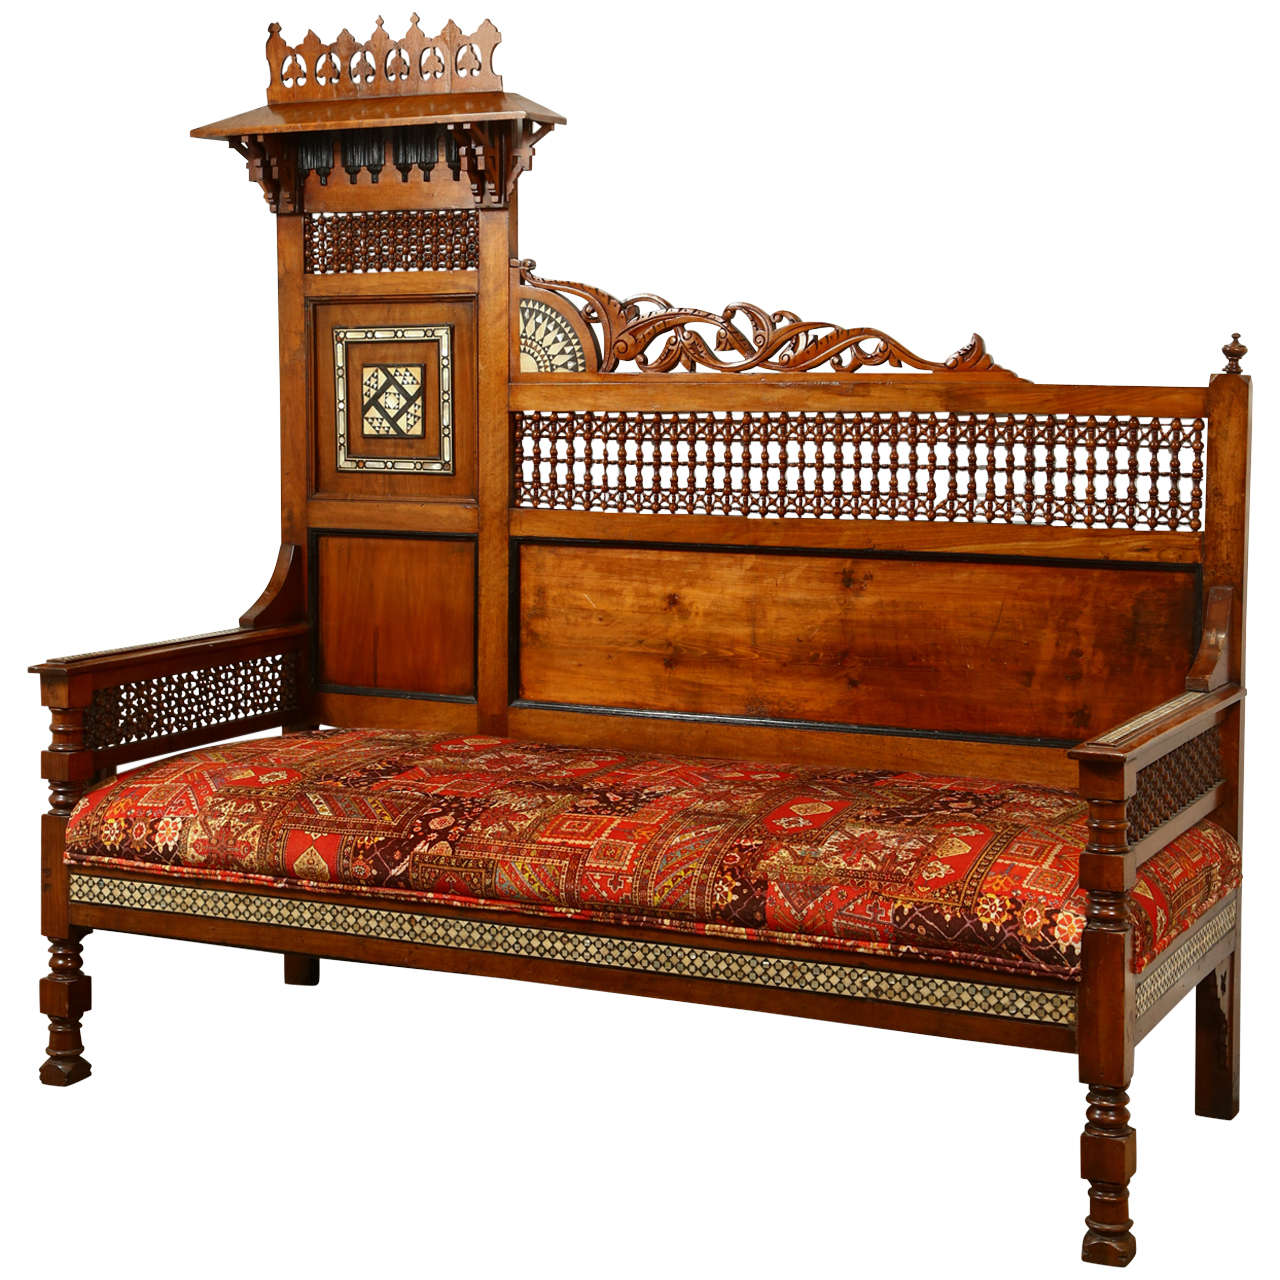 Syrian Settee with Mother-of-Pearl Inlay